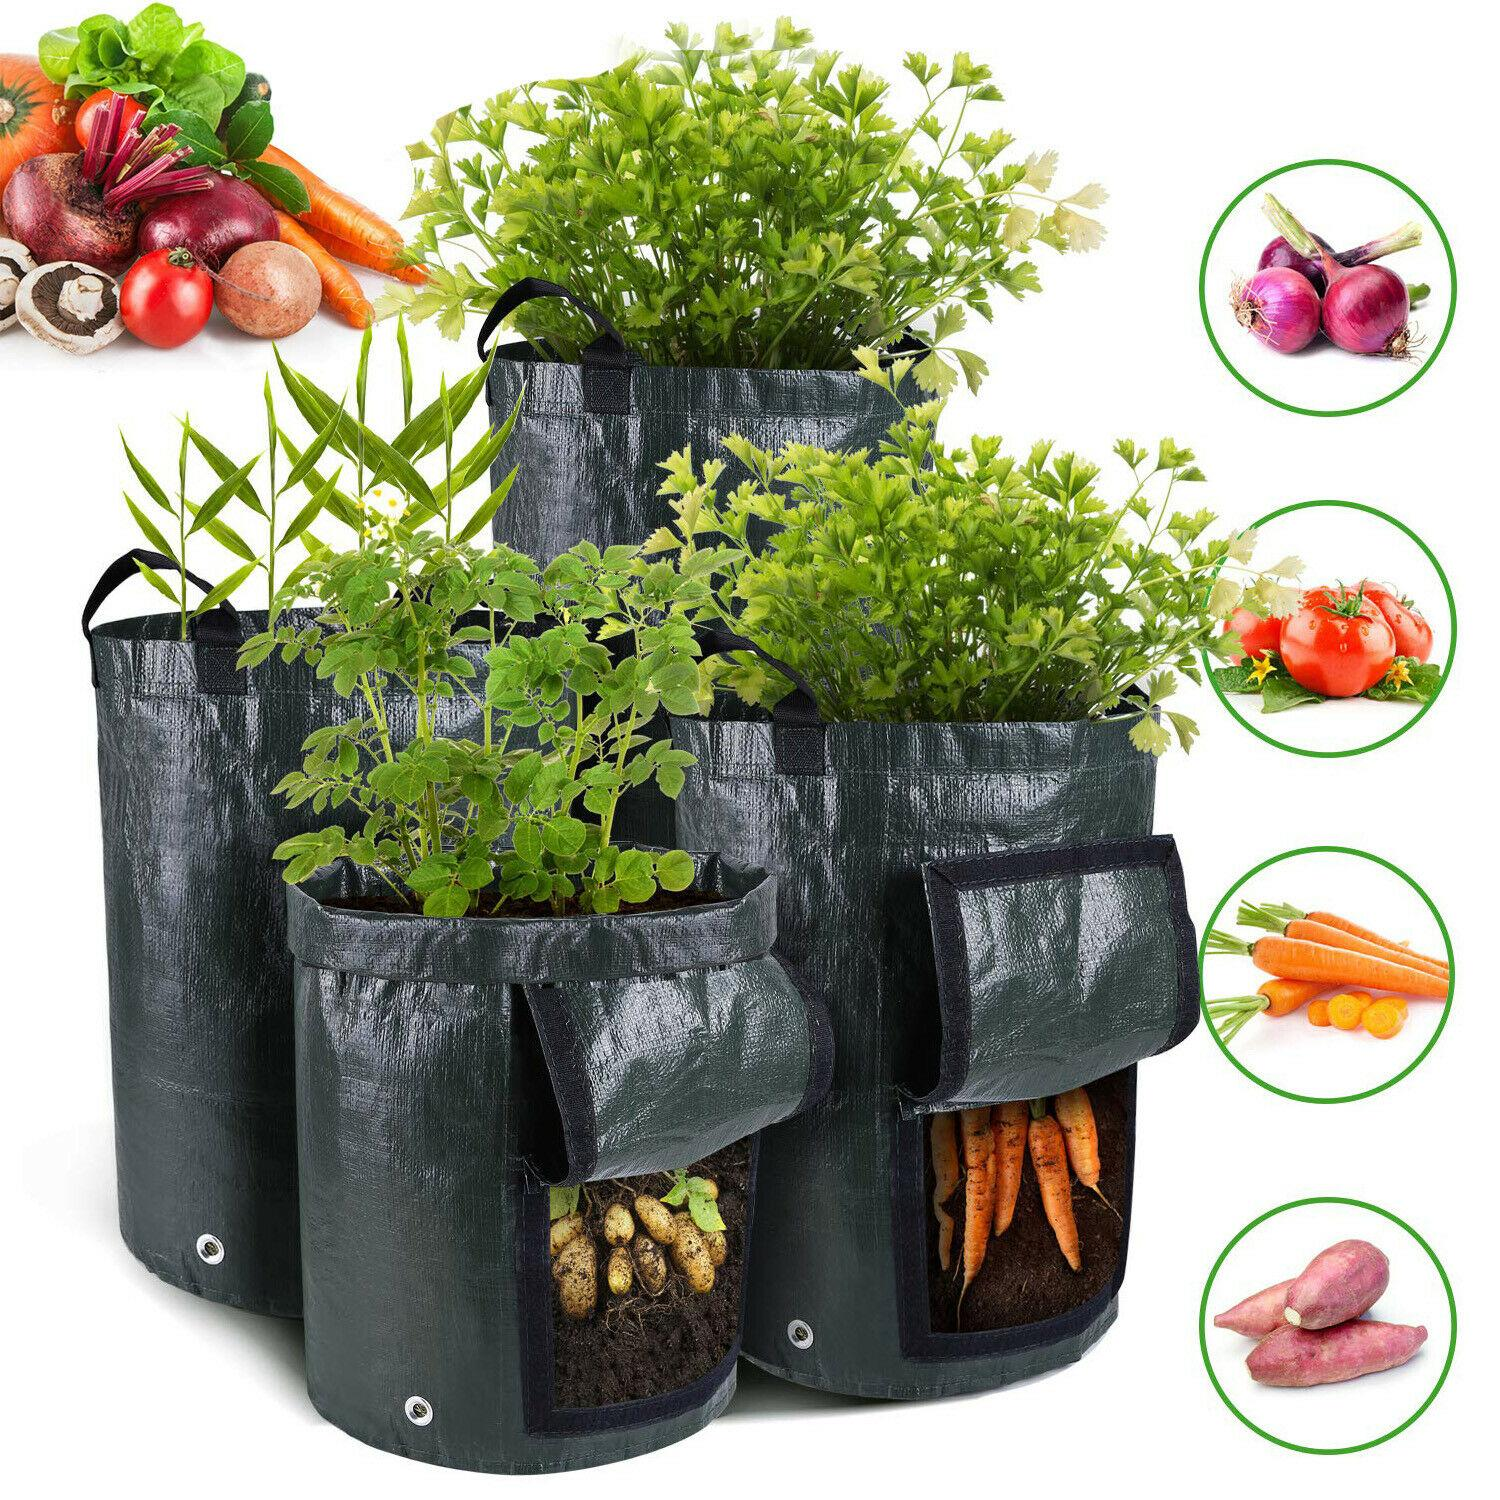 Hot Patio Lawn Outdoor Vertical Garden Hanging Open Style Vegetable Planting Grow Bag Potato Strawberry Planter Bags For Growing Potatoes